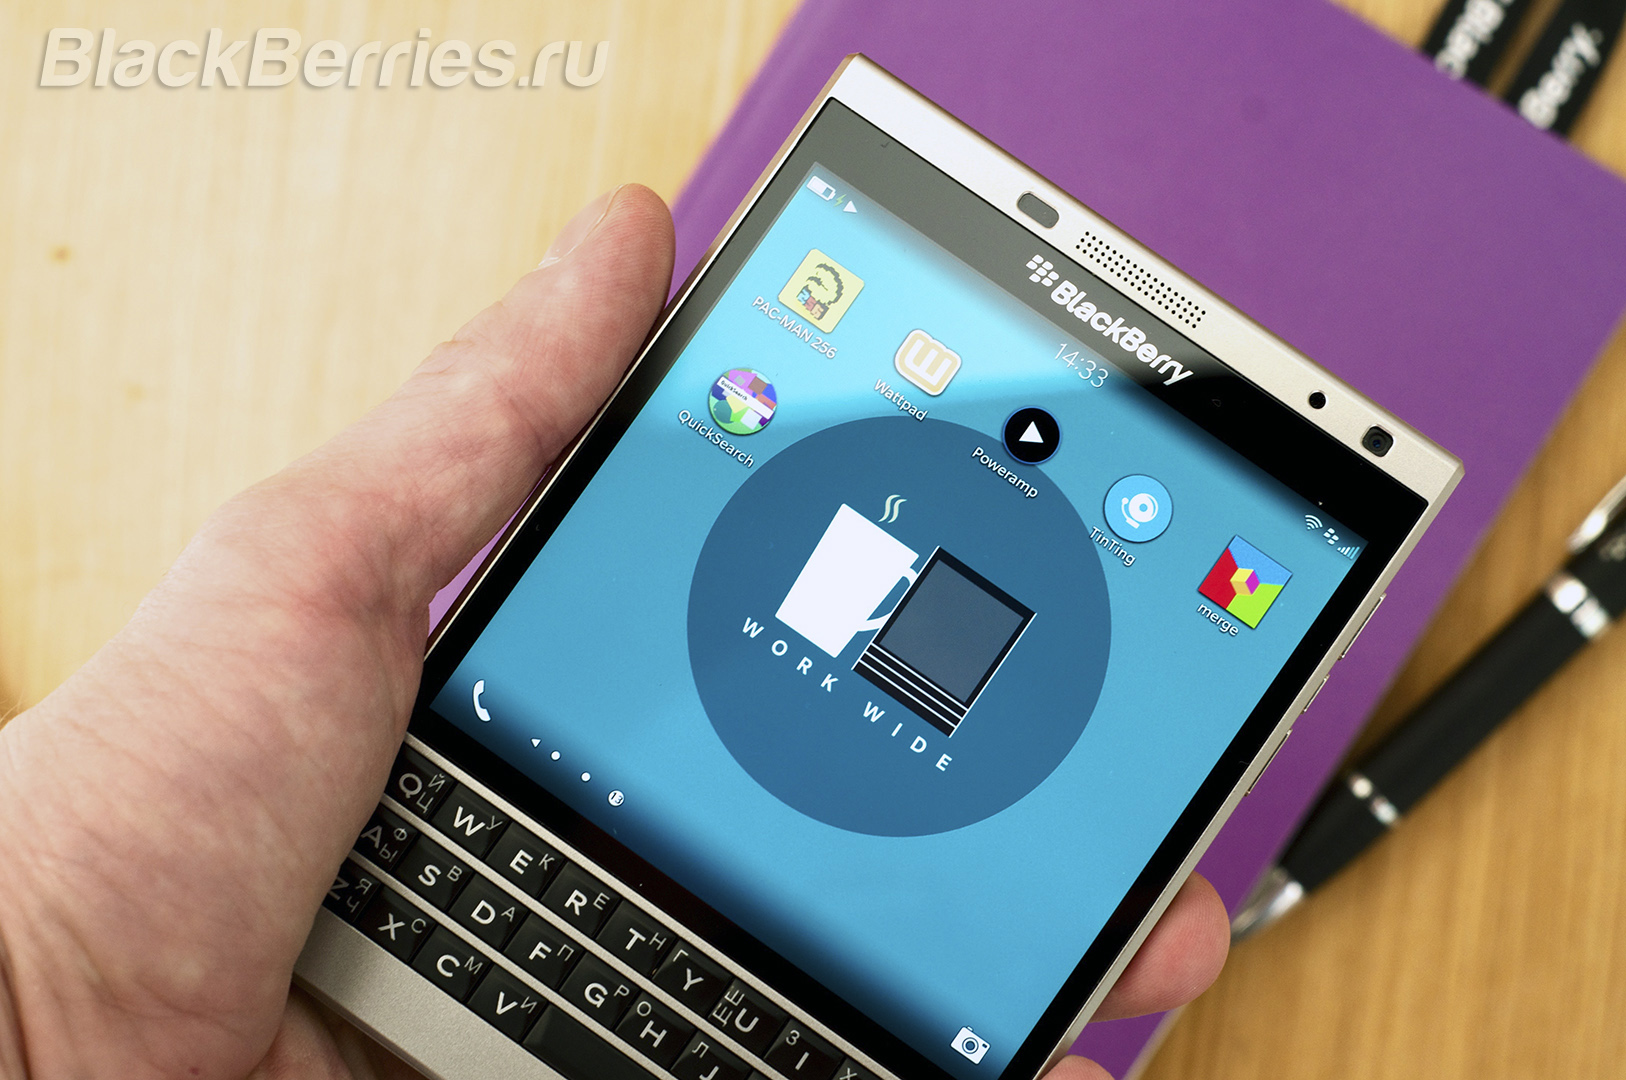 BlackBerry-Passport-SE-Apps-29-08-4